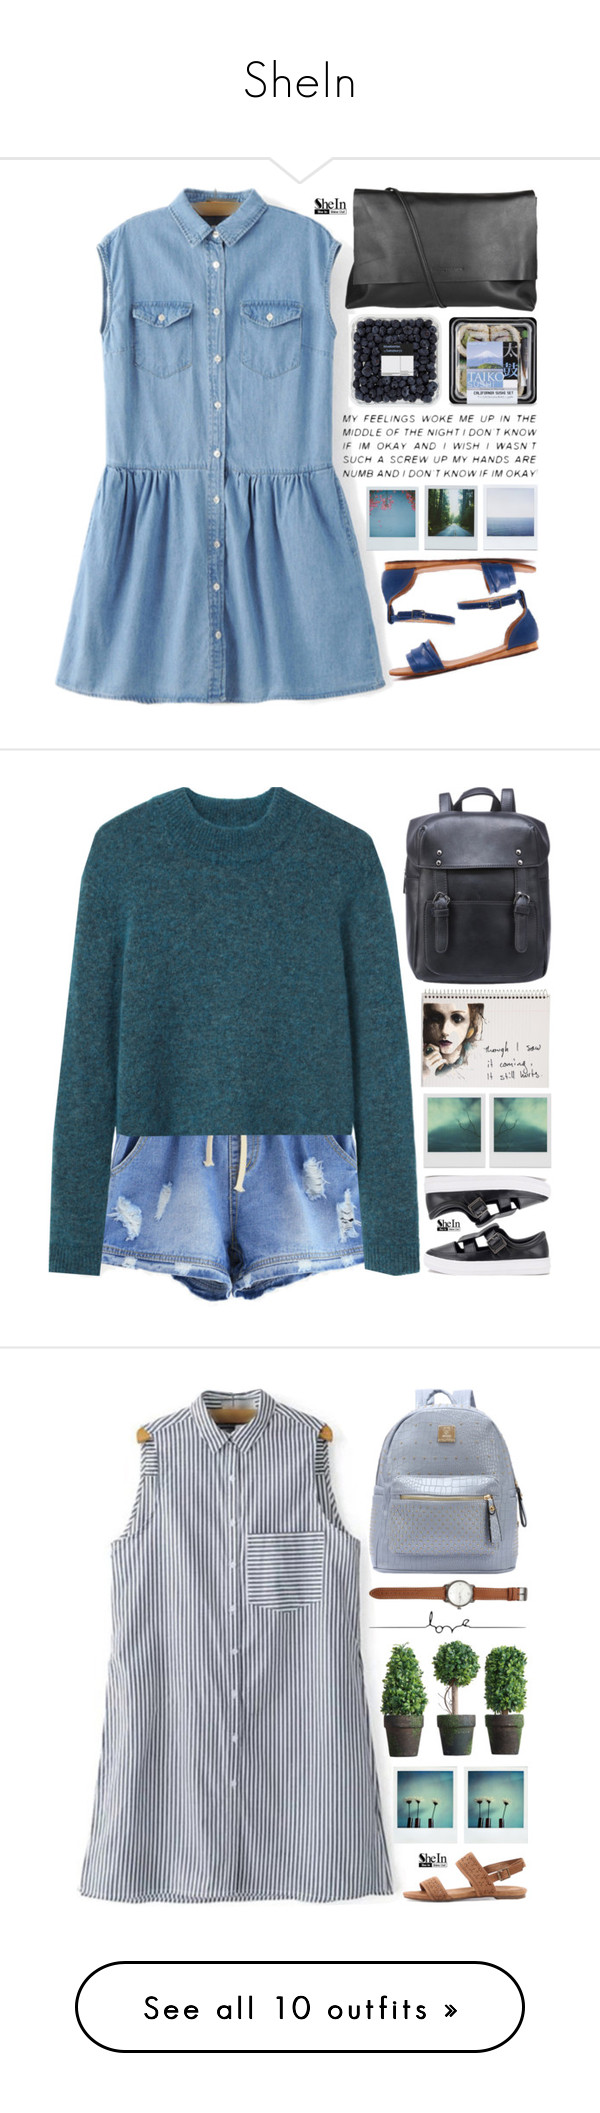 """""""SheIn"""" by scarlett-morwenna ❤ liked on Polyvore featuring Arlington Milne, Polaroid, kitchen, vintage, Acne Studios, Mead, Love Quotes Scarves, Jack Spade, Coqui Coqui and adidas"""